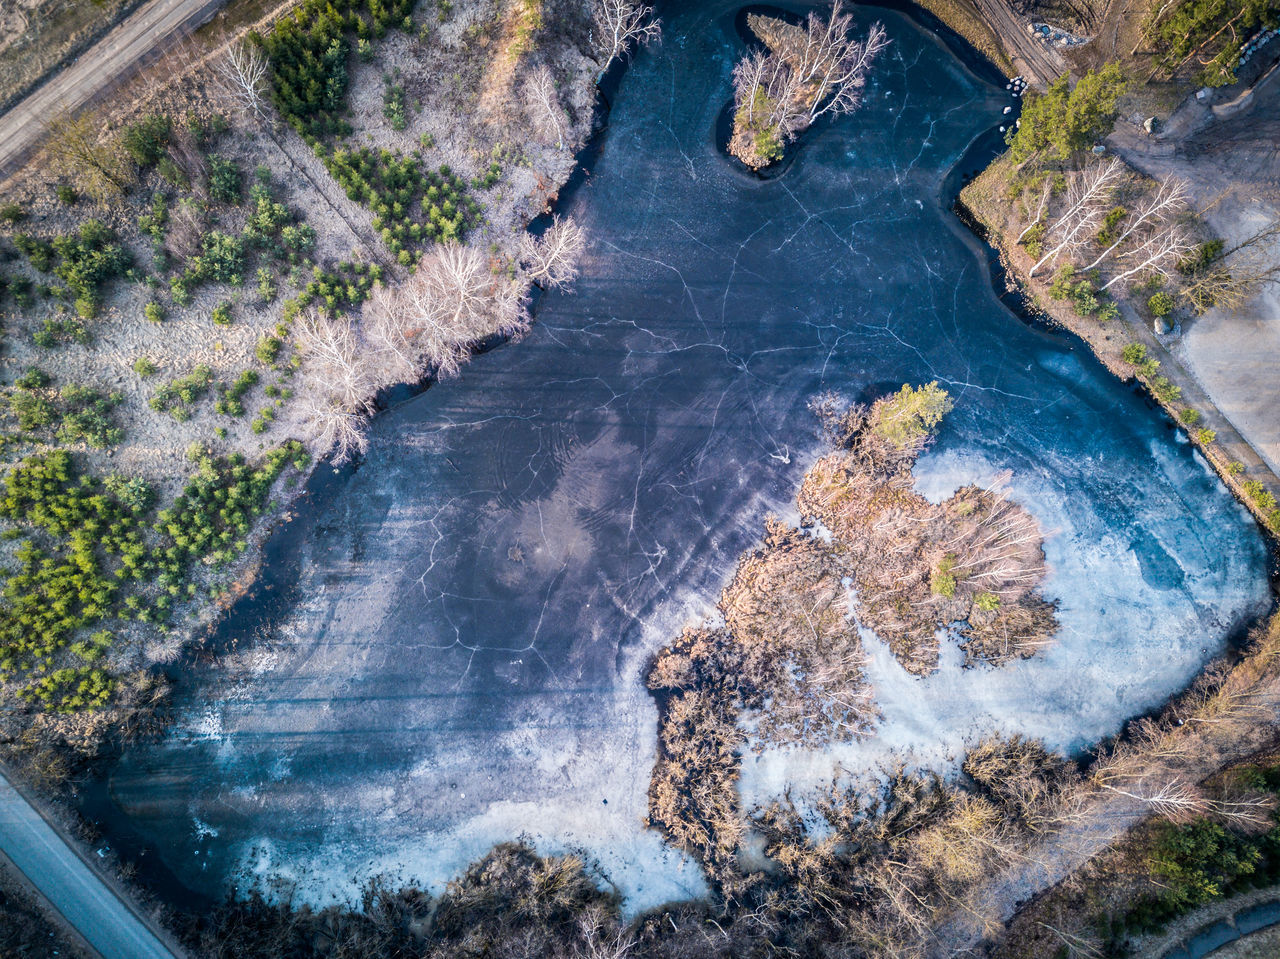 Aerial shot of lake with cracked ice cover - spring is coming, nature wakes up / Dji Mavic Pro drone Aerial View Beauty In Nature Cracked Cracked Ground Crazed Dji DJI Mavic Pro Djimavic Drone  Dronephotography High Angle View Ice Ice Covered  Lake Landscape Mavic Melting Nature Snow Split Spring Springtime Trees Wallpaper Water Flying High Flying High Flying High